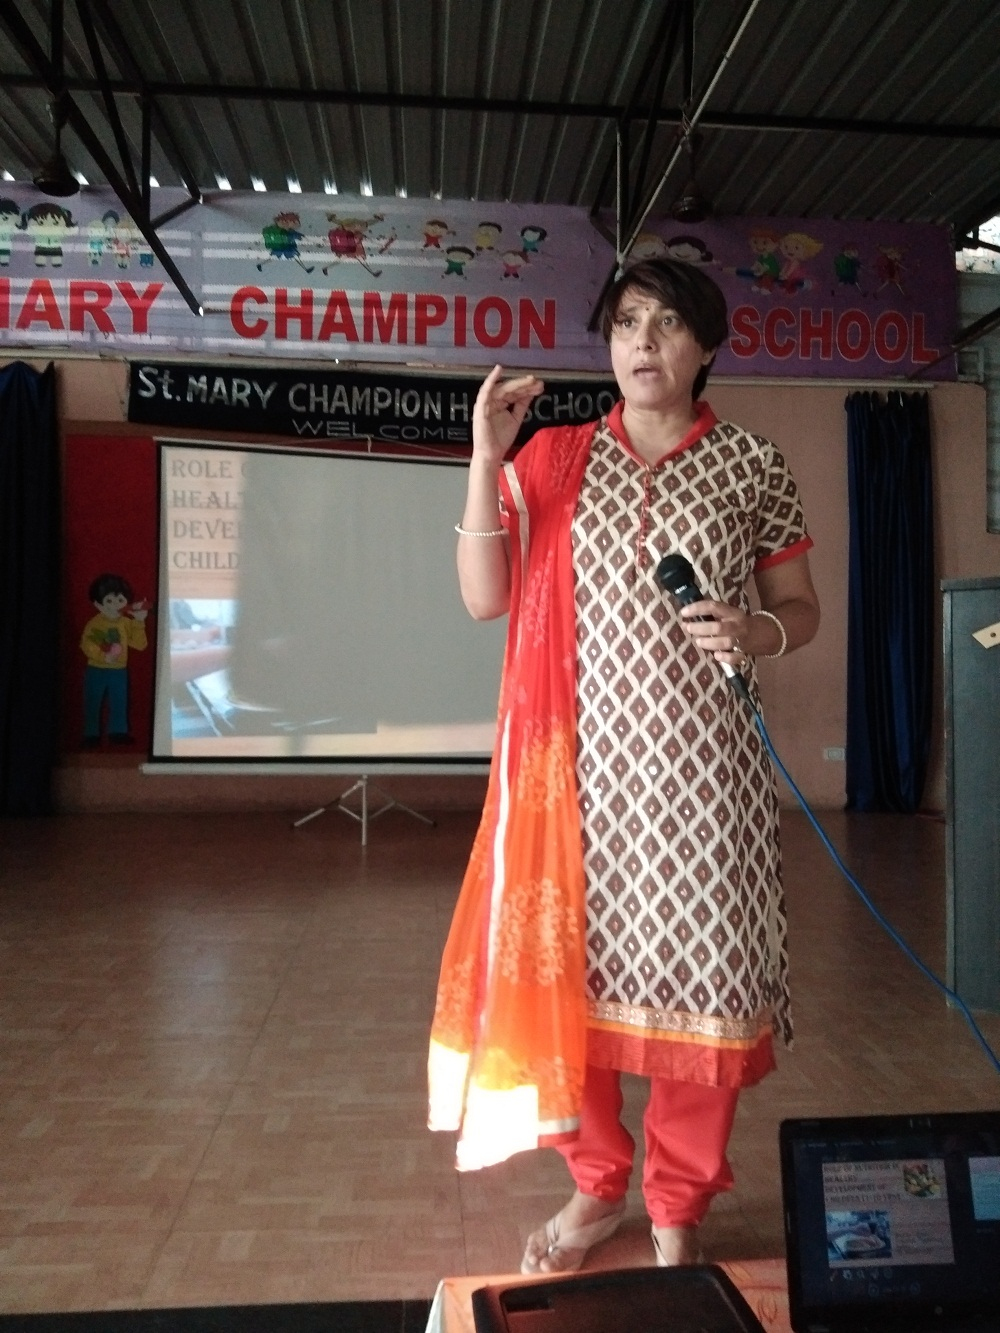 SEMINAR ON HEALTH AND NUTRITION